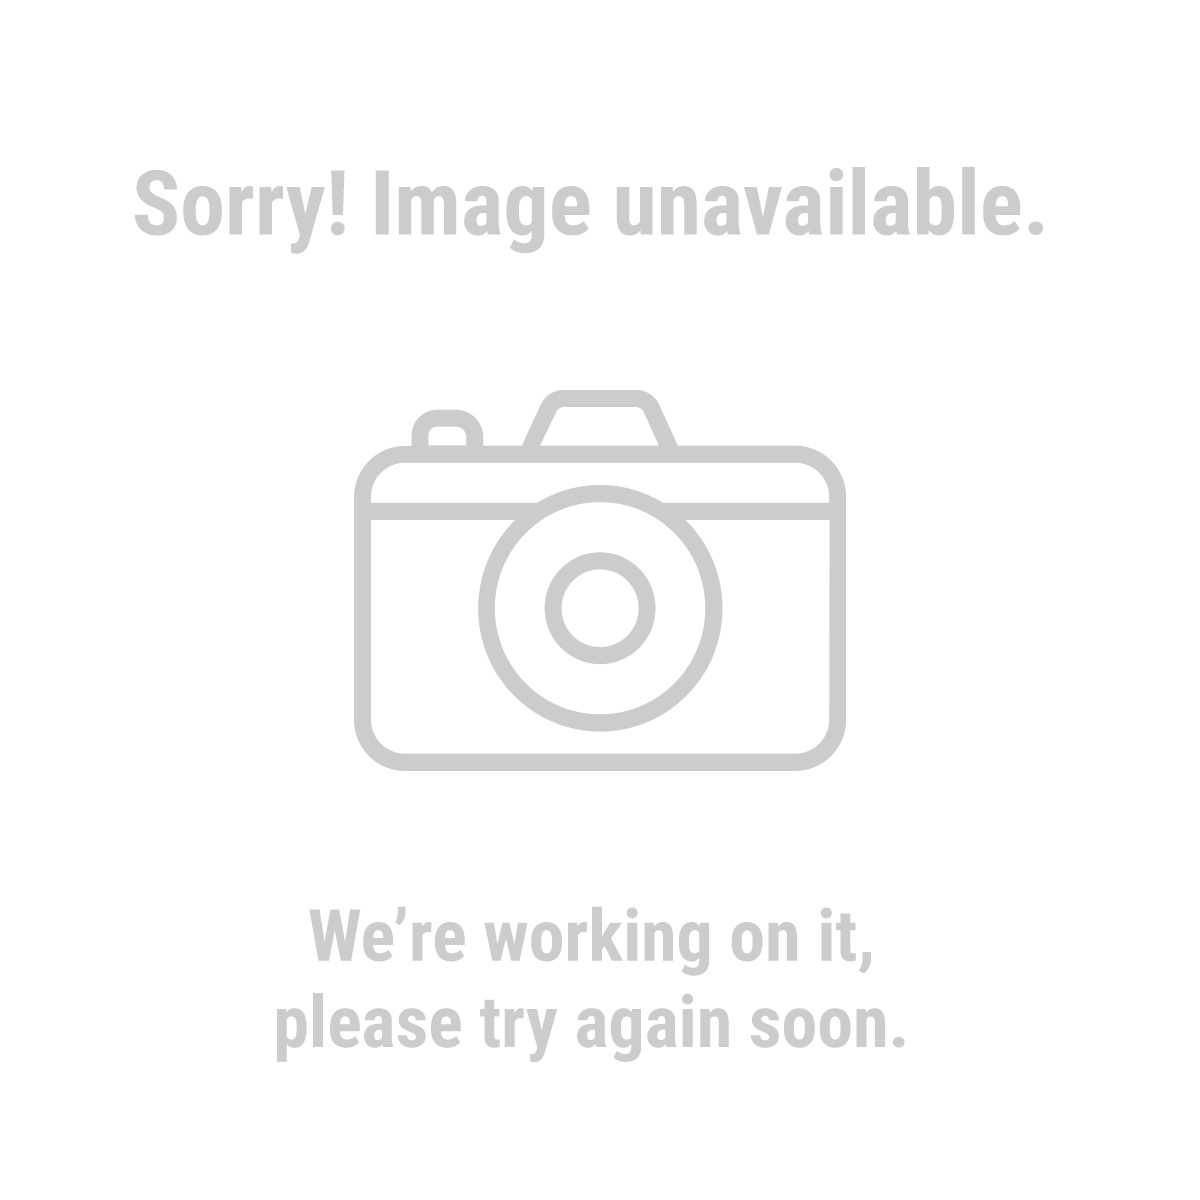 Chicago Electric 41448 100 Ft. x 14 Gauge Outdoor Extension Cord